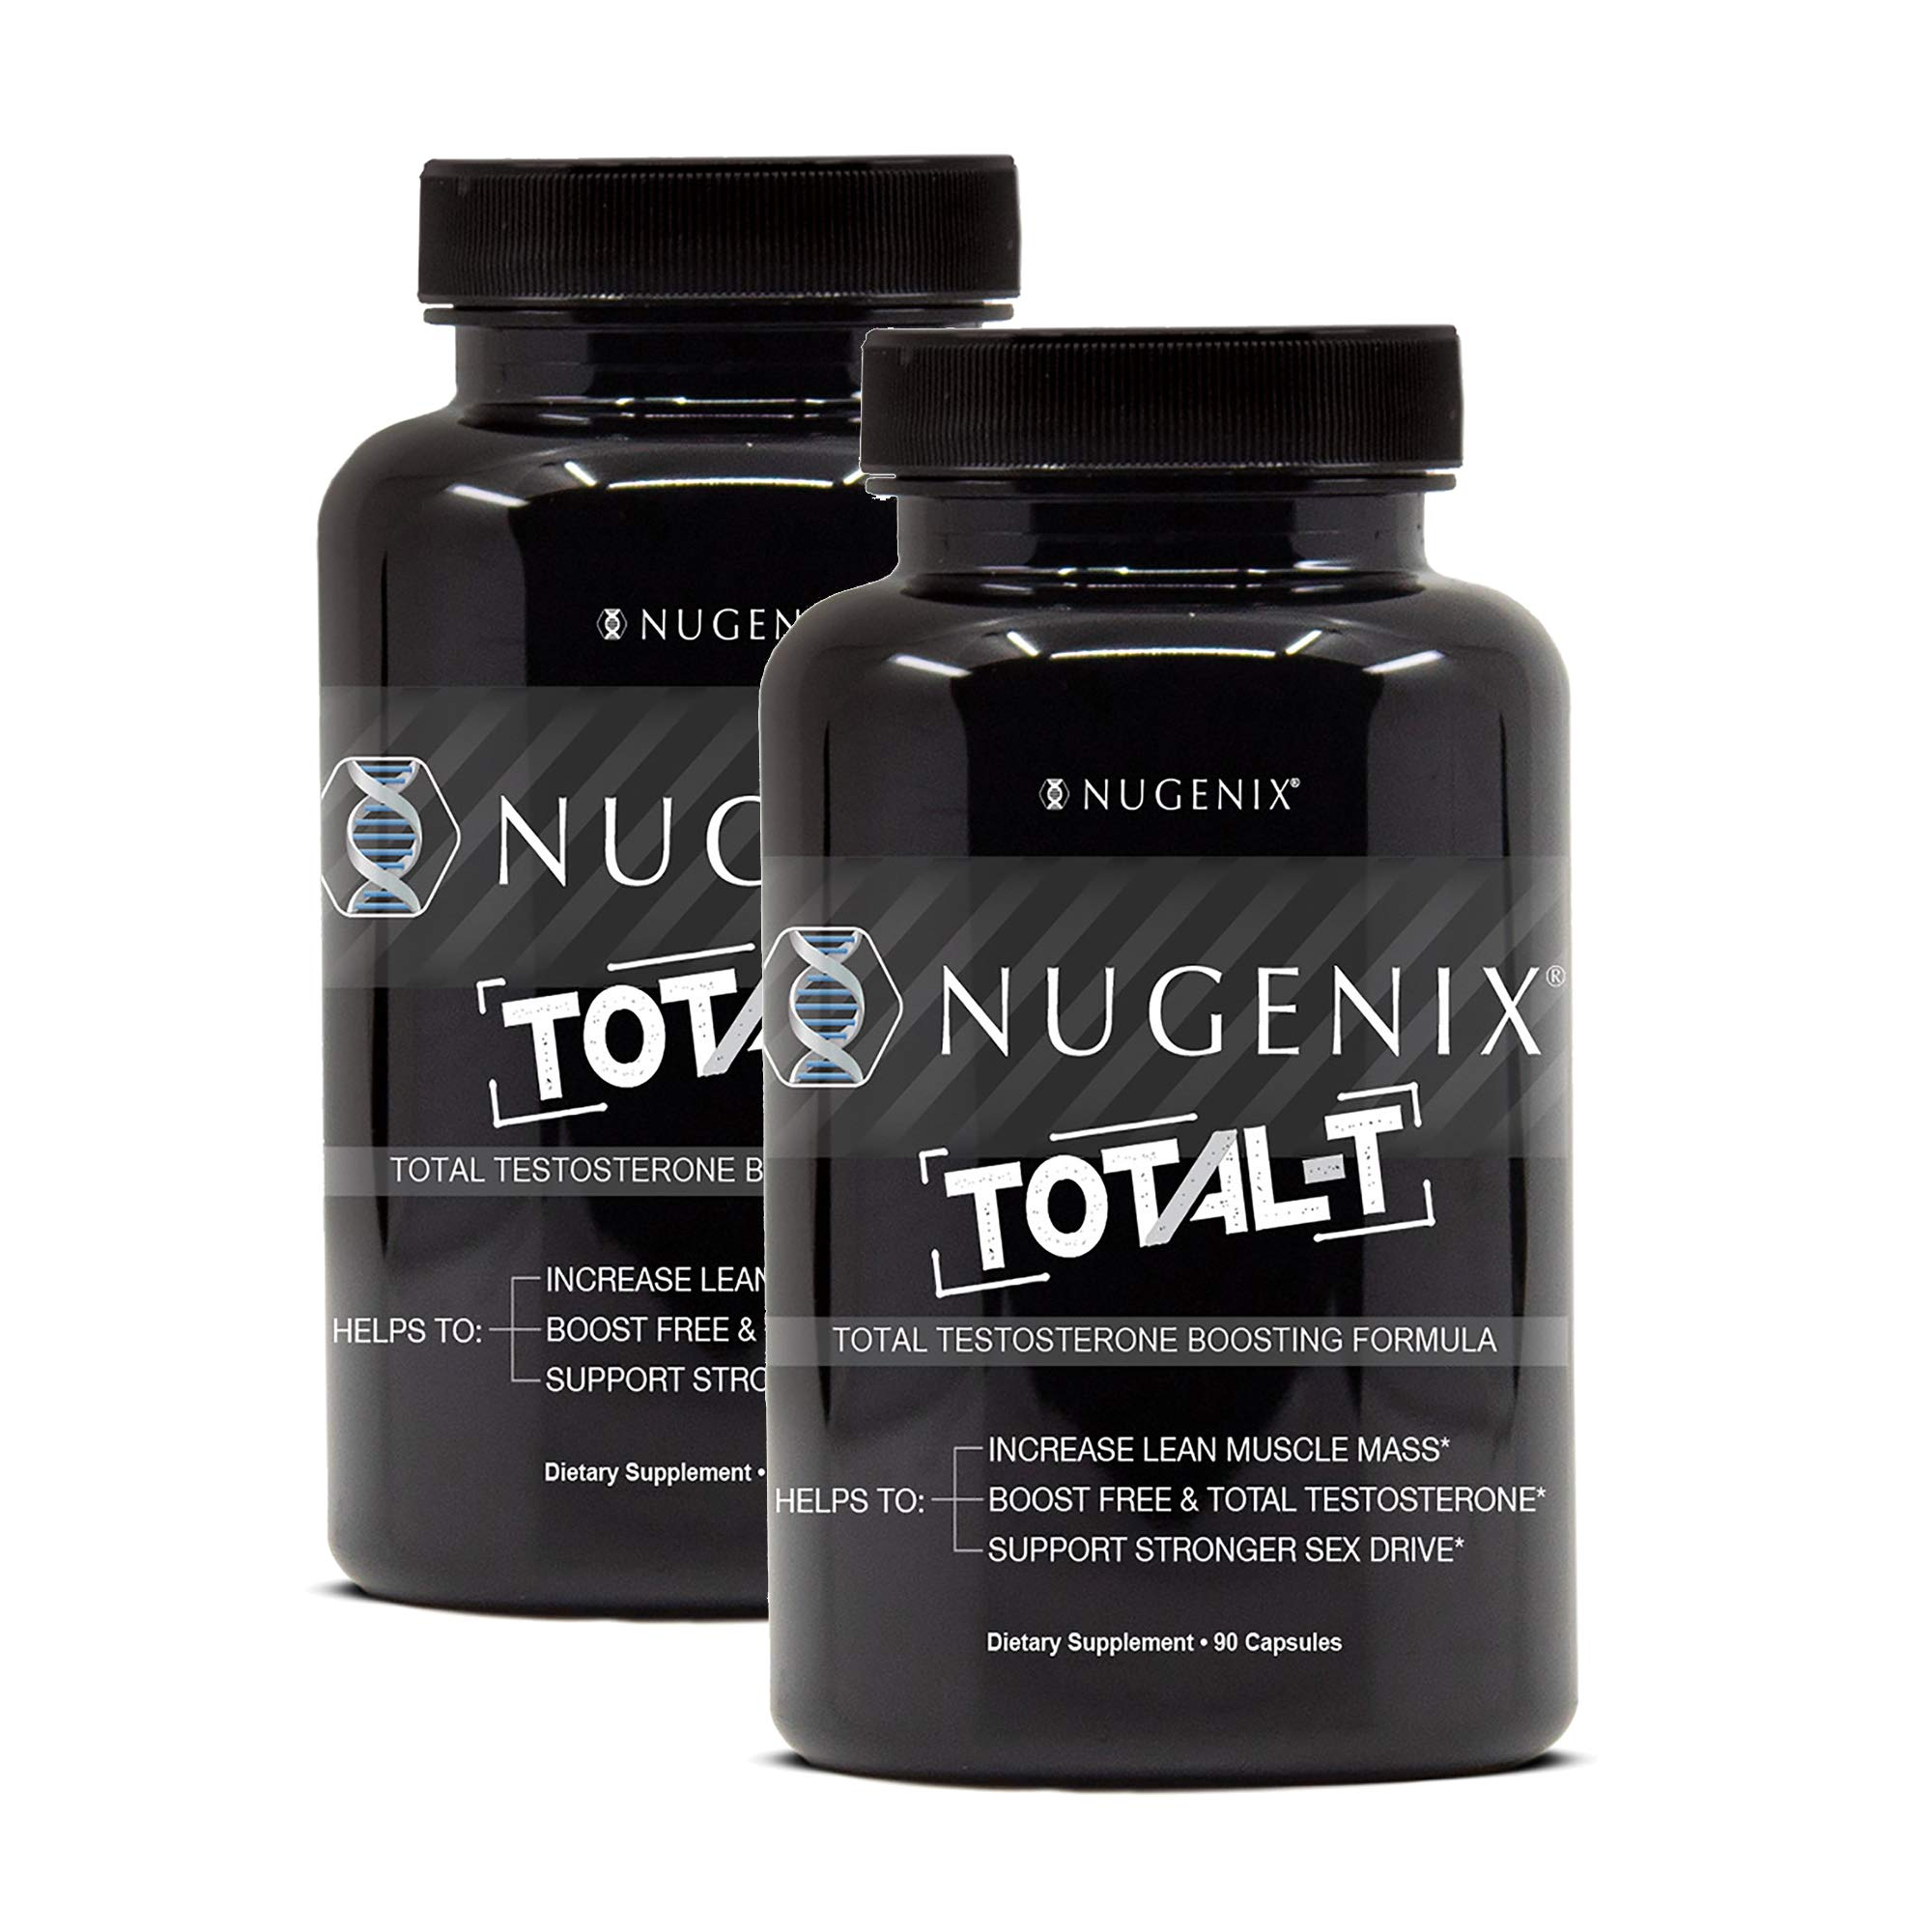 Nugenix Total-T - Twin Pack by Nugenix (Image #1)